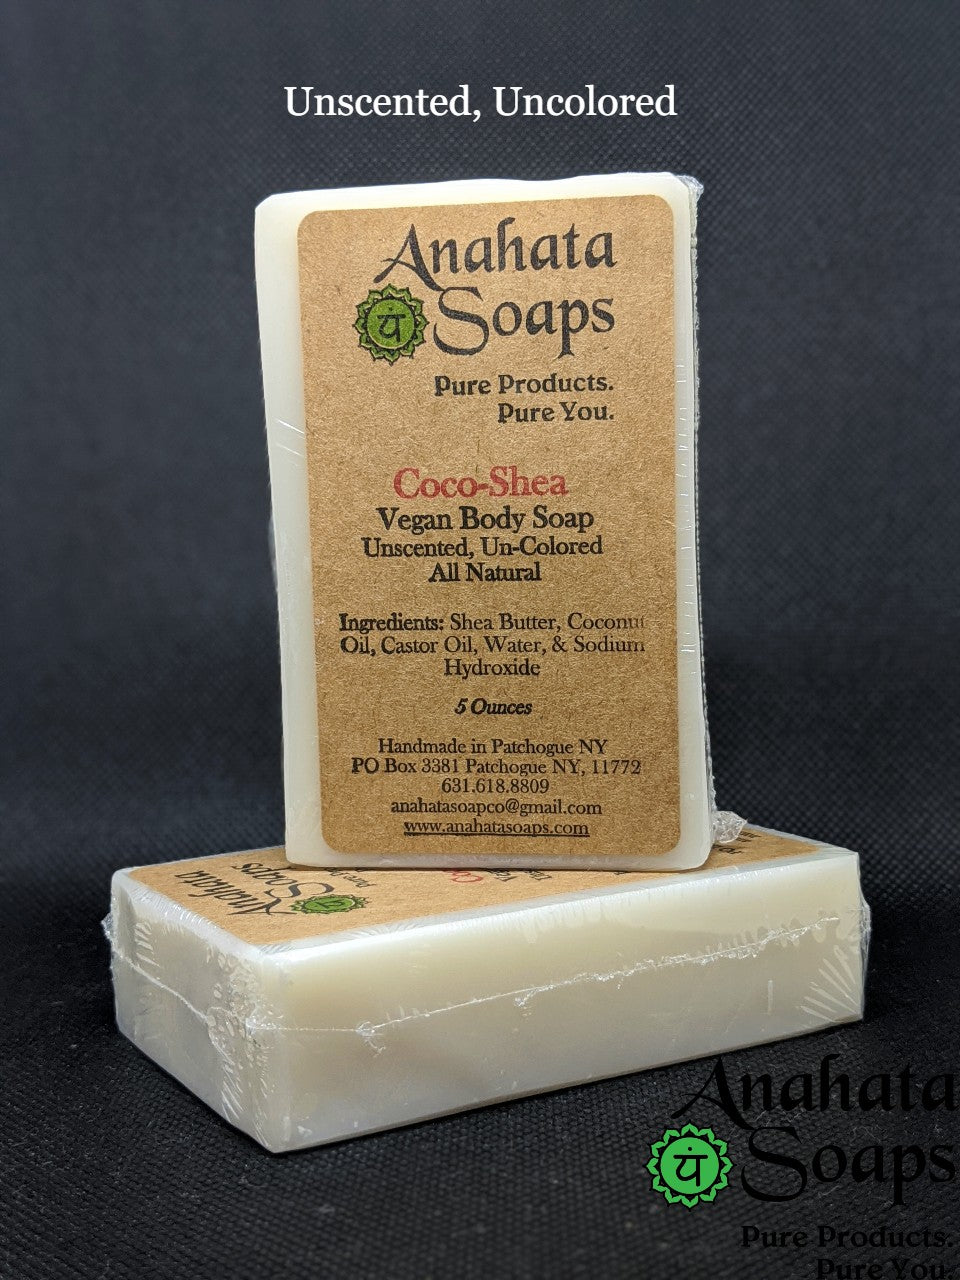 Anahata Soaps--Unscented, Un-Colored